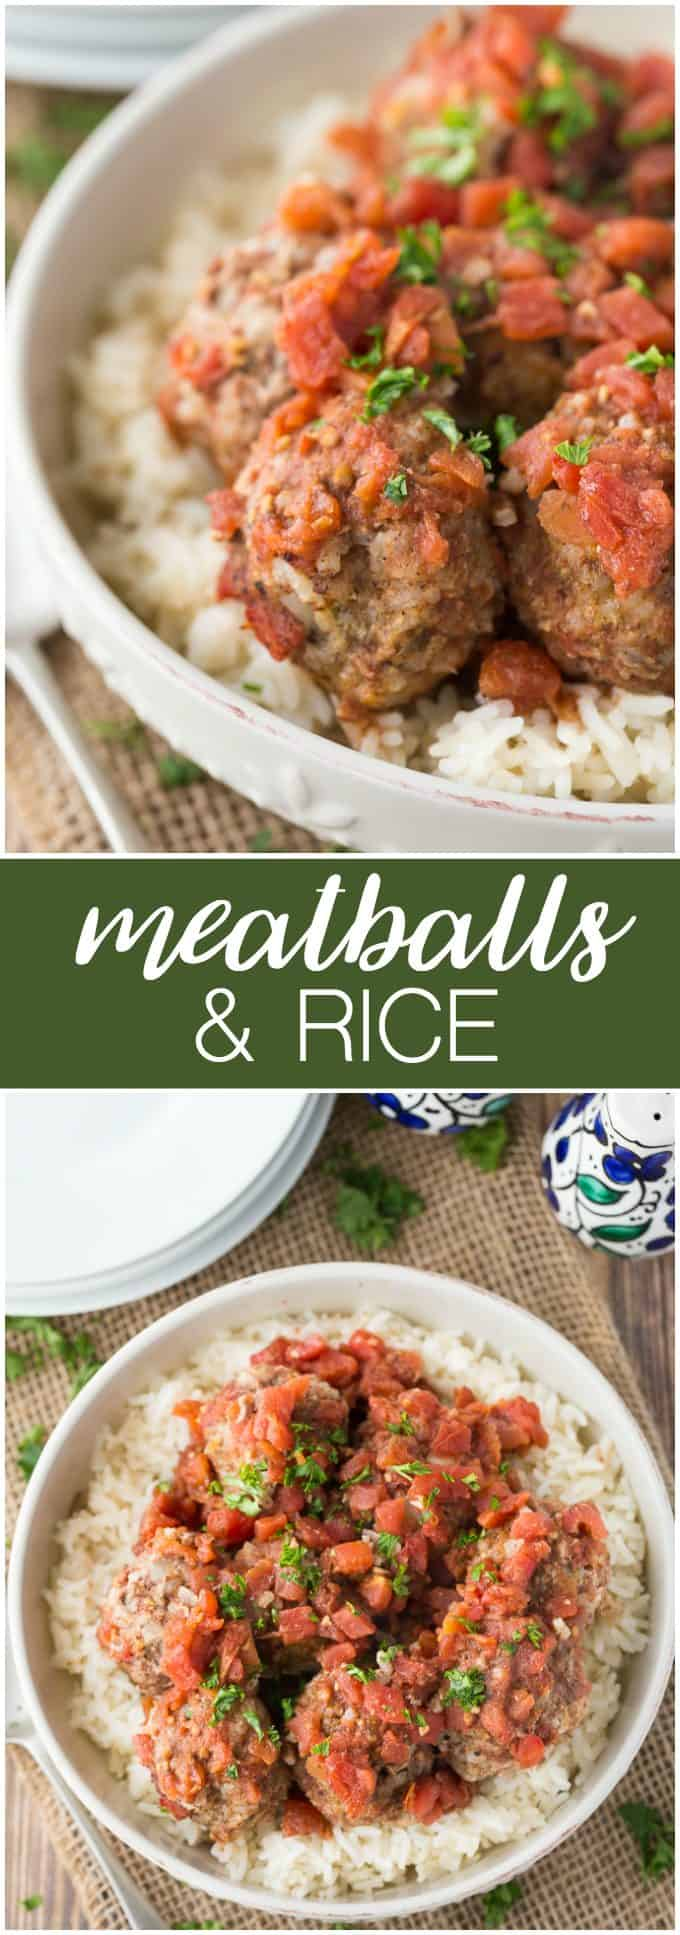 Meatballs & Rice - A simple twist to an Italian favourite that takes less than 30 minutes to make.